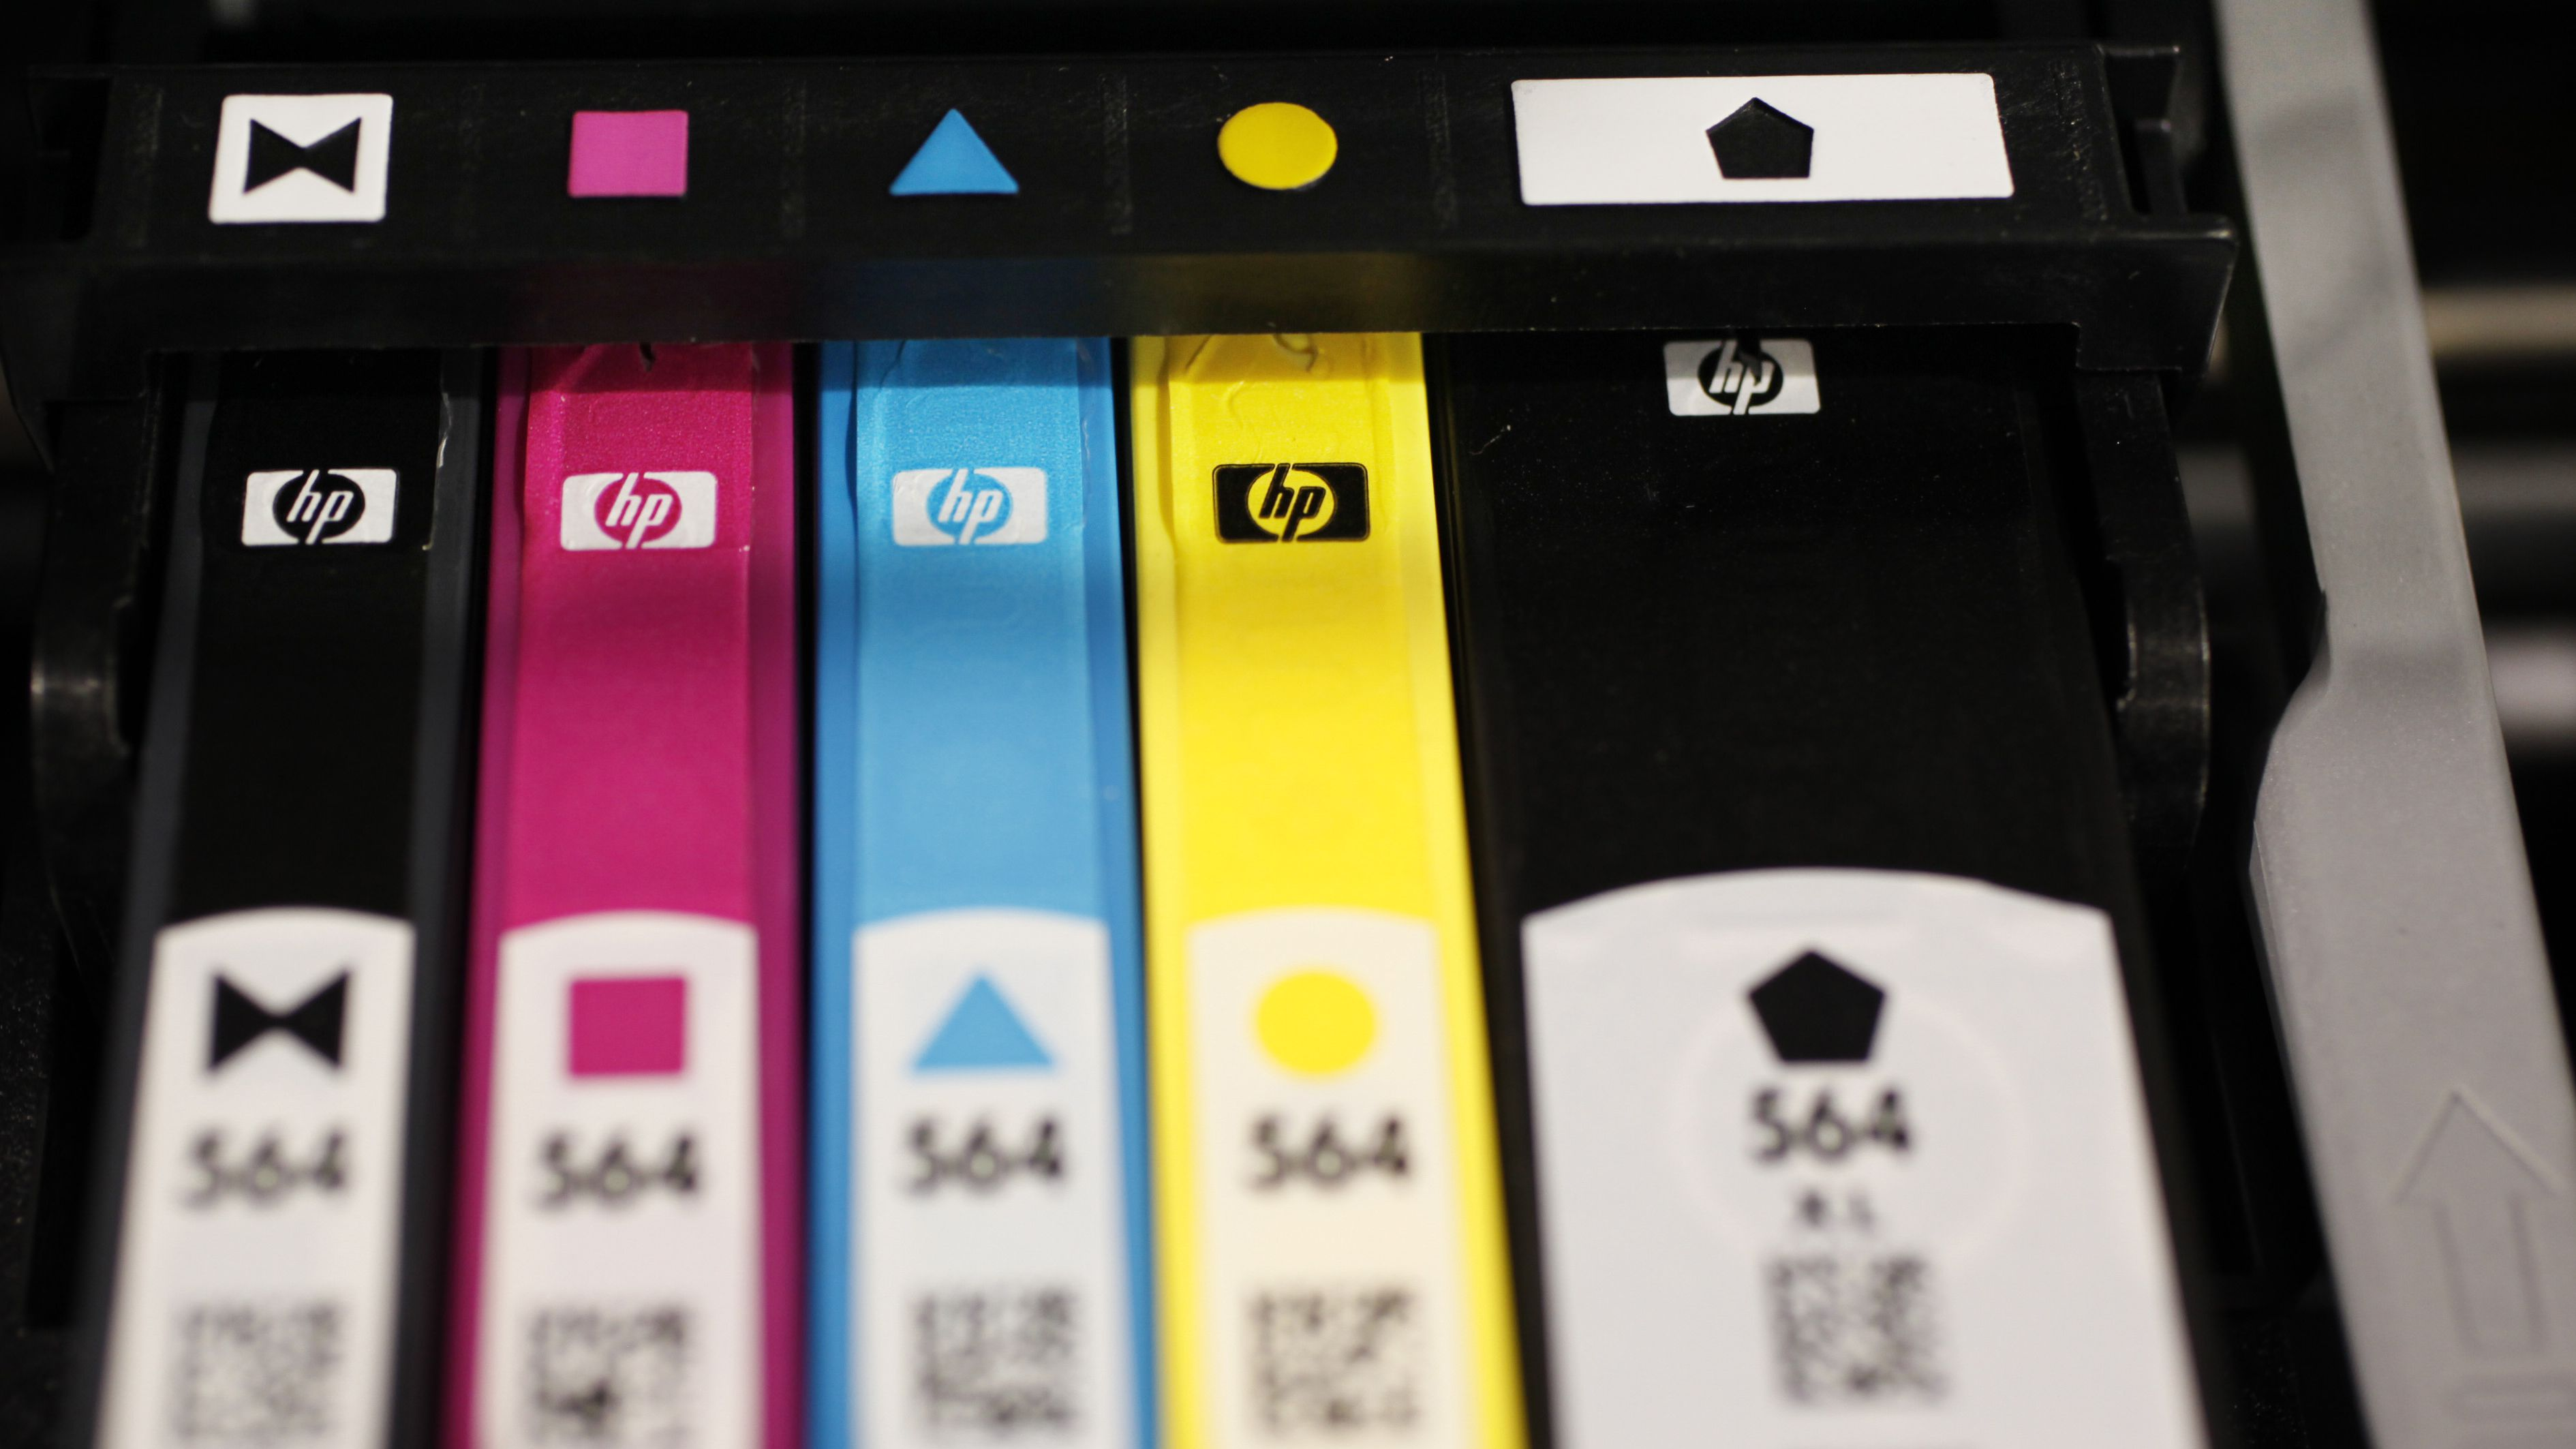 Hewlett Packard printer inks are seen inside an HP printer on display at Best Buy in Mountain View, Calif., Monday, May 18, 2009. Hewlett-Packard Co. on Tuesday said its quarterly profit dropped 17 percent as sales of personal computers and printer ink slumped. The numbers were still in line with Wall Street's forecasts. (AP Photo/Paul Sakuma)